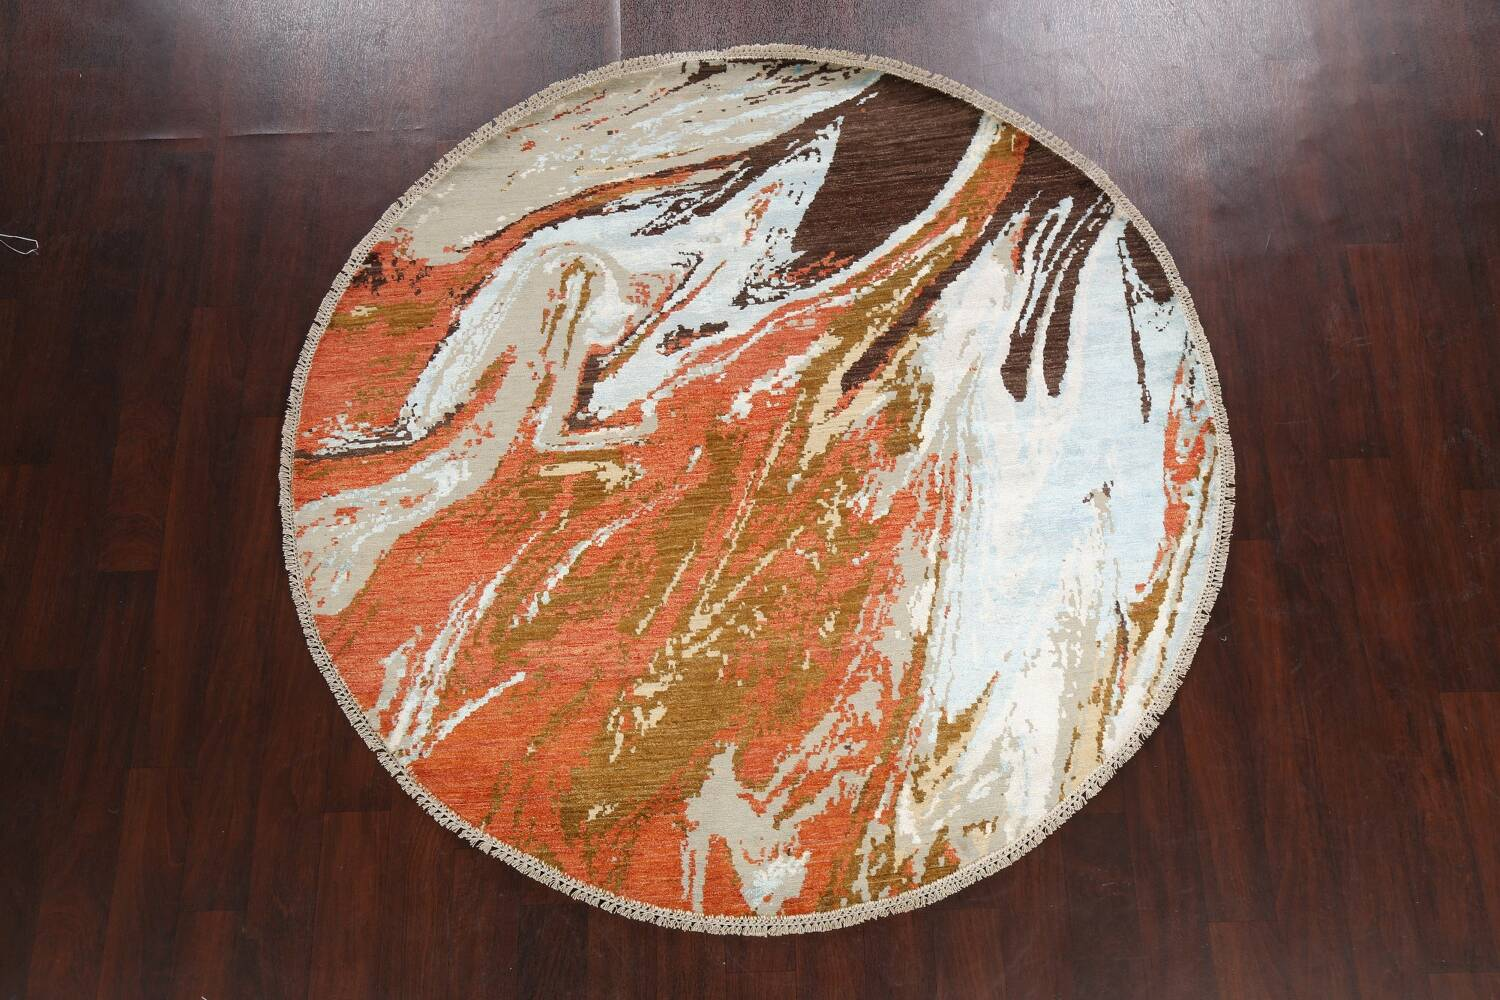 Vegetable Dye Contemporary Round Abstract Oriental Area Rug 6x6 image 2